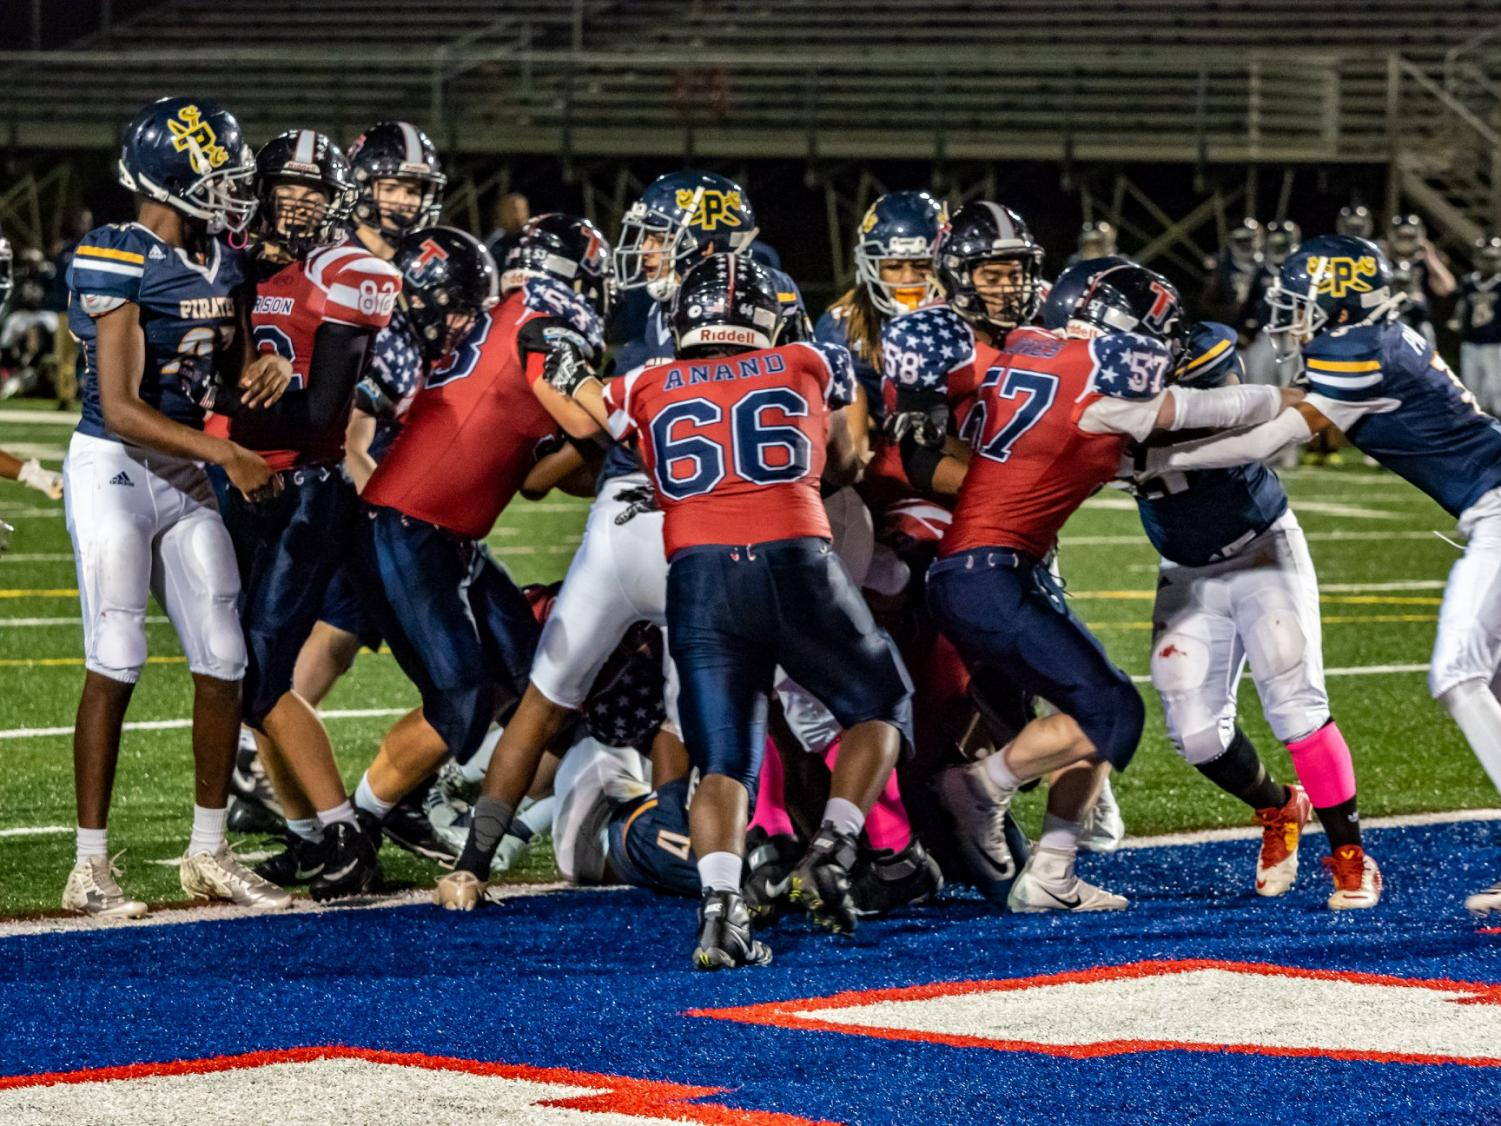 The Colonials score the winning touchdown in double overtime